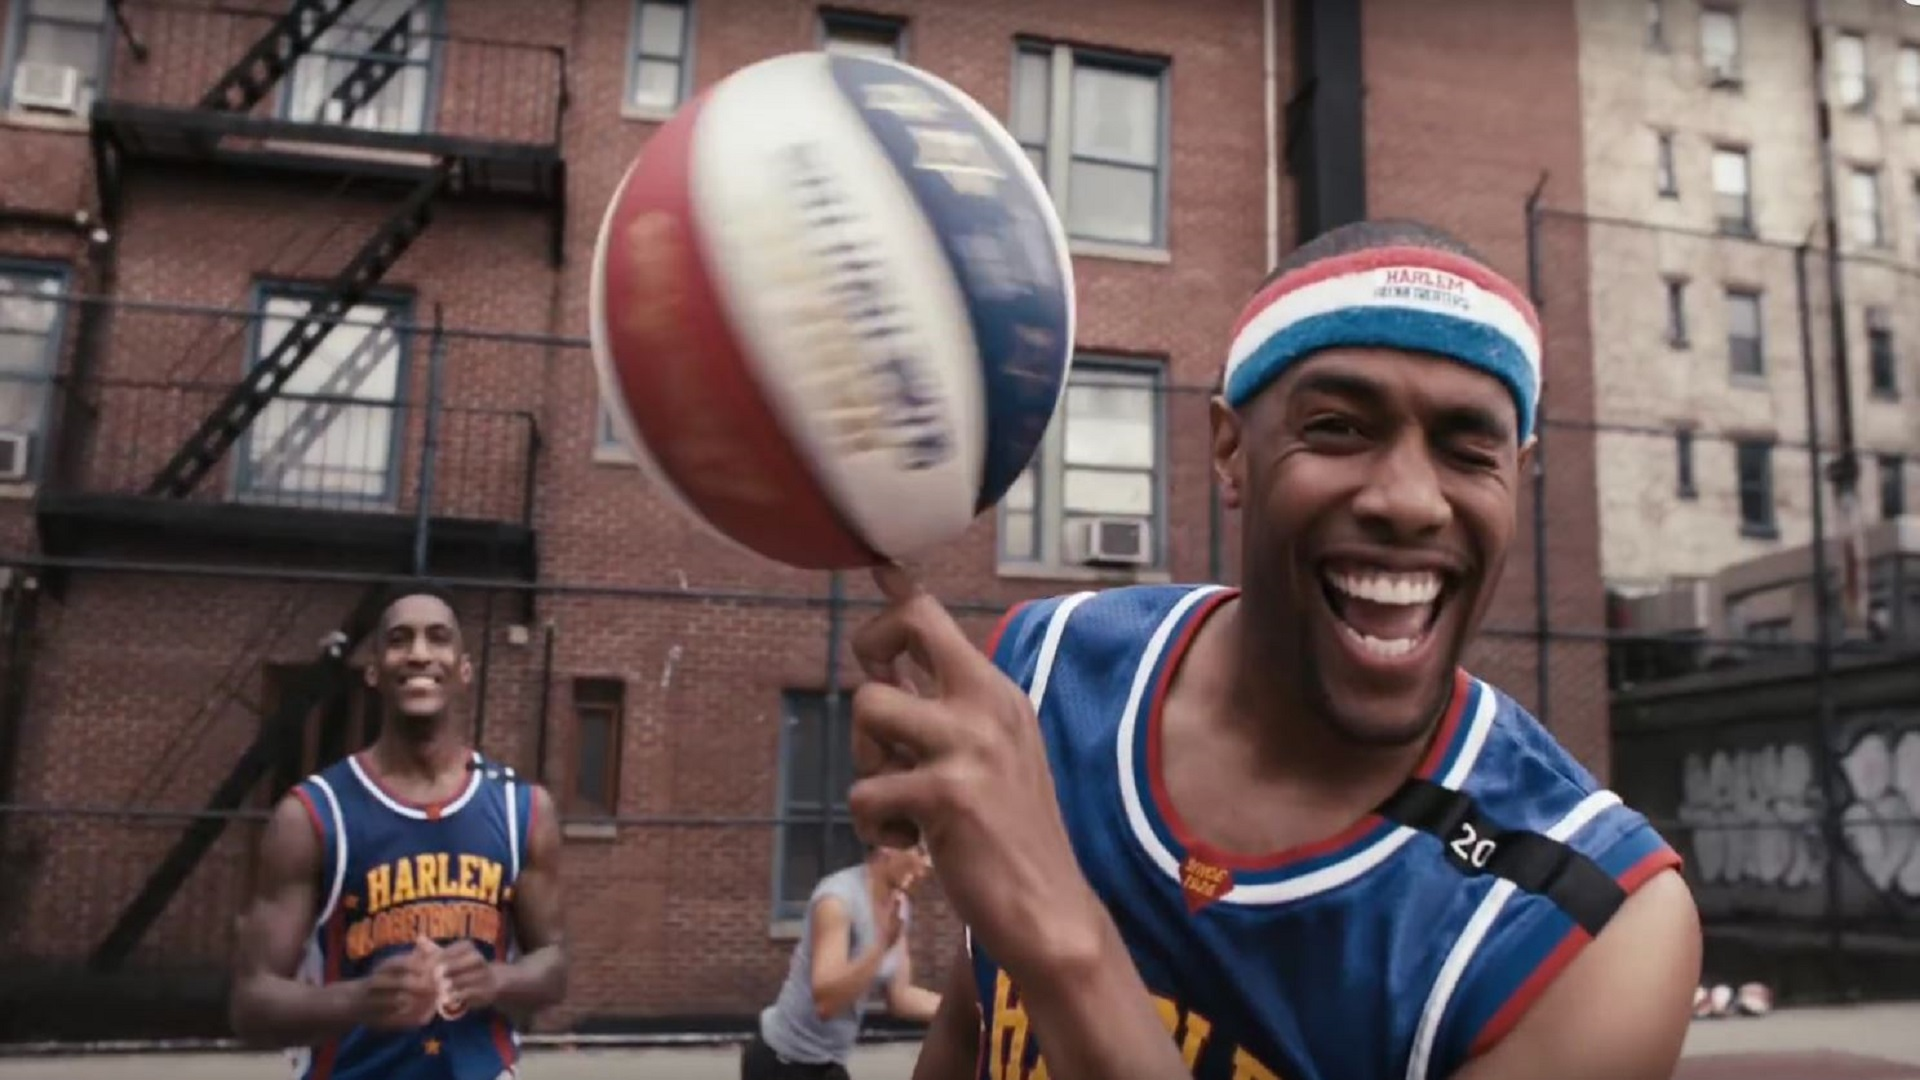 Basketballer Harlem Globetrotters (USA), 2015.